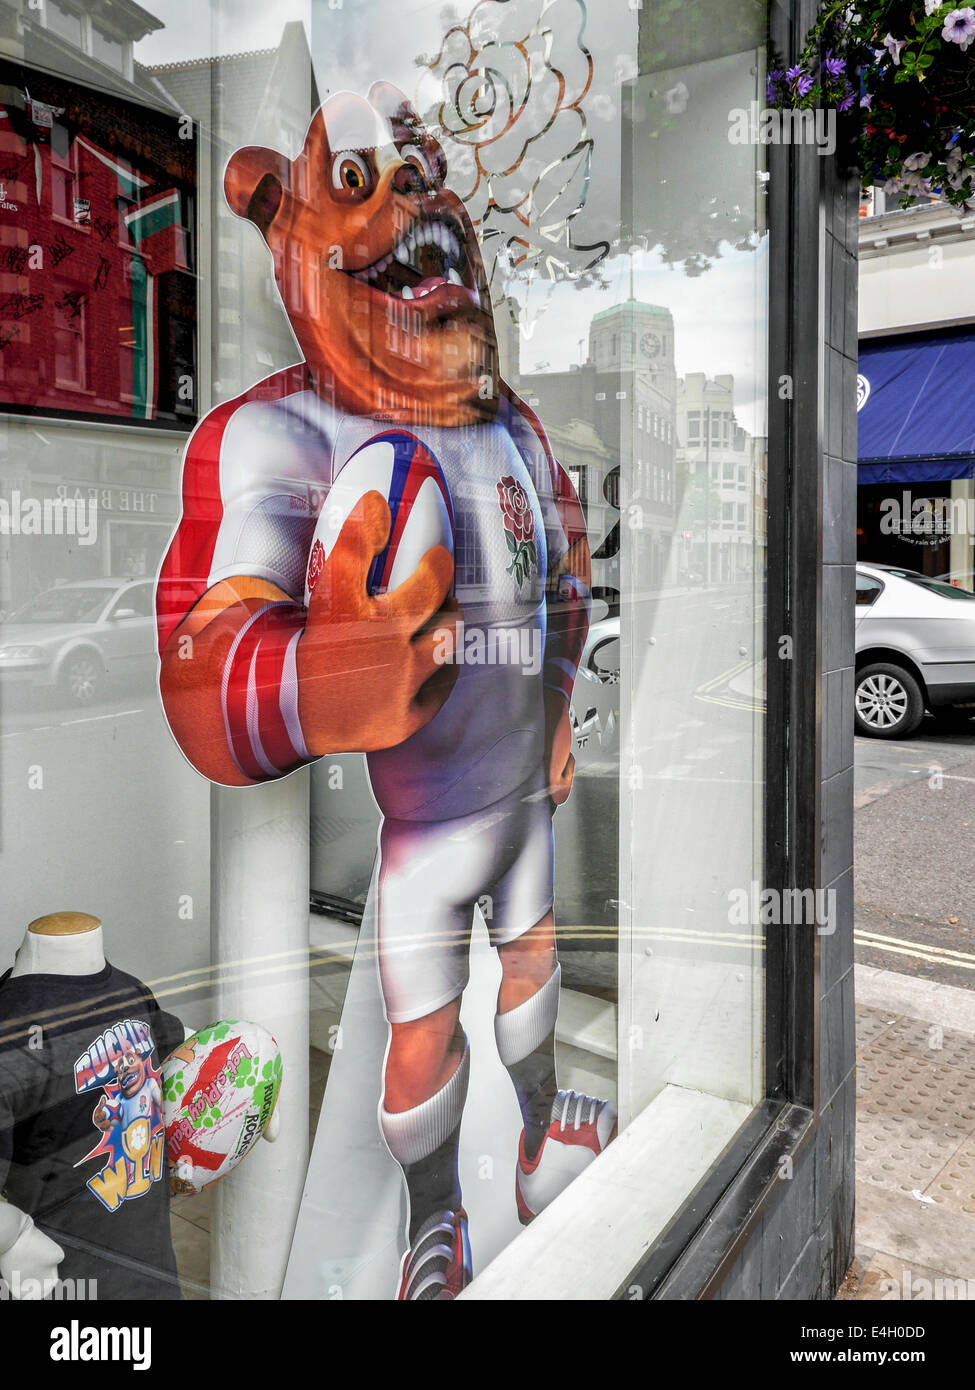 Ruckley, bulldog ambassador and mascot of the English rugby union team with ball and rugby shirt, The Rugby Store, - Stock Image